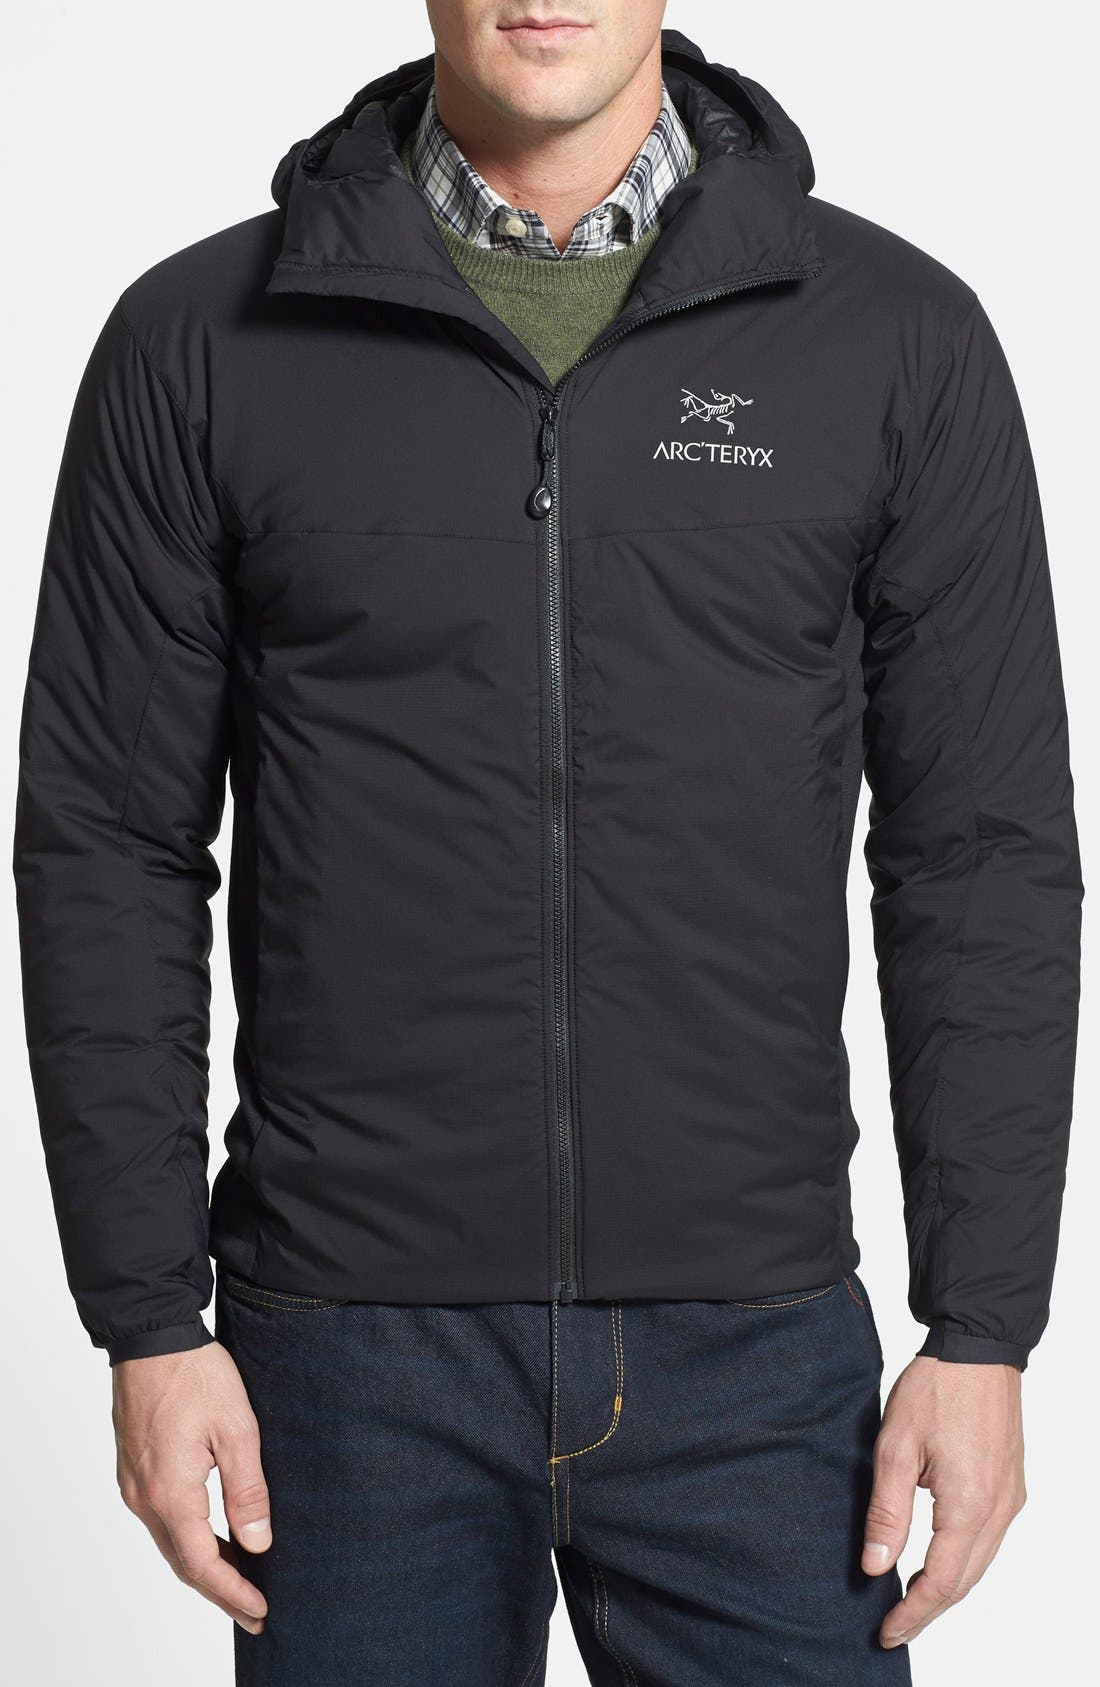 Main Image - Arc'teryx 'Atom LT' Trim Fit Wind & Water Resistant Coreloft™ Hooded Jacket